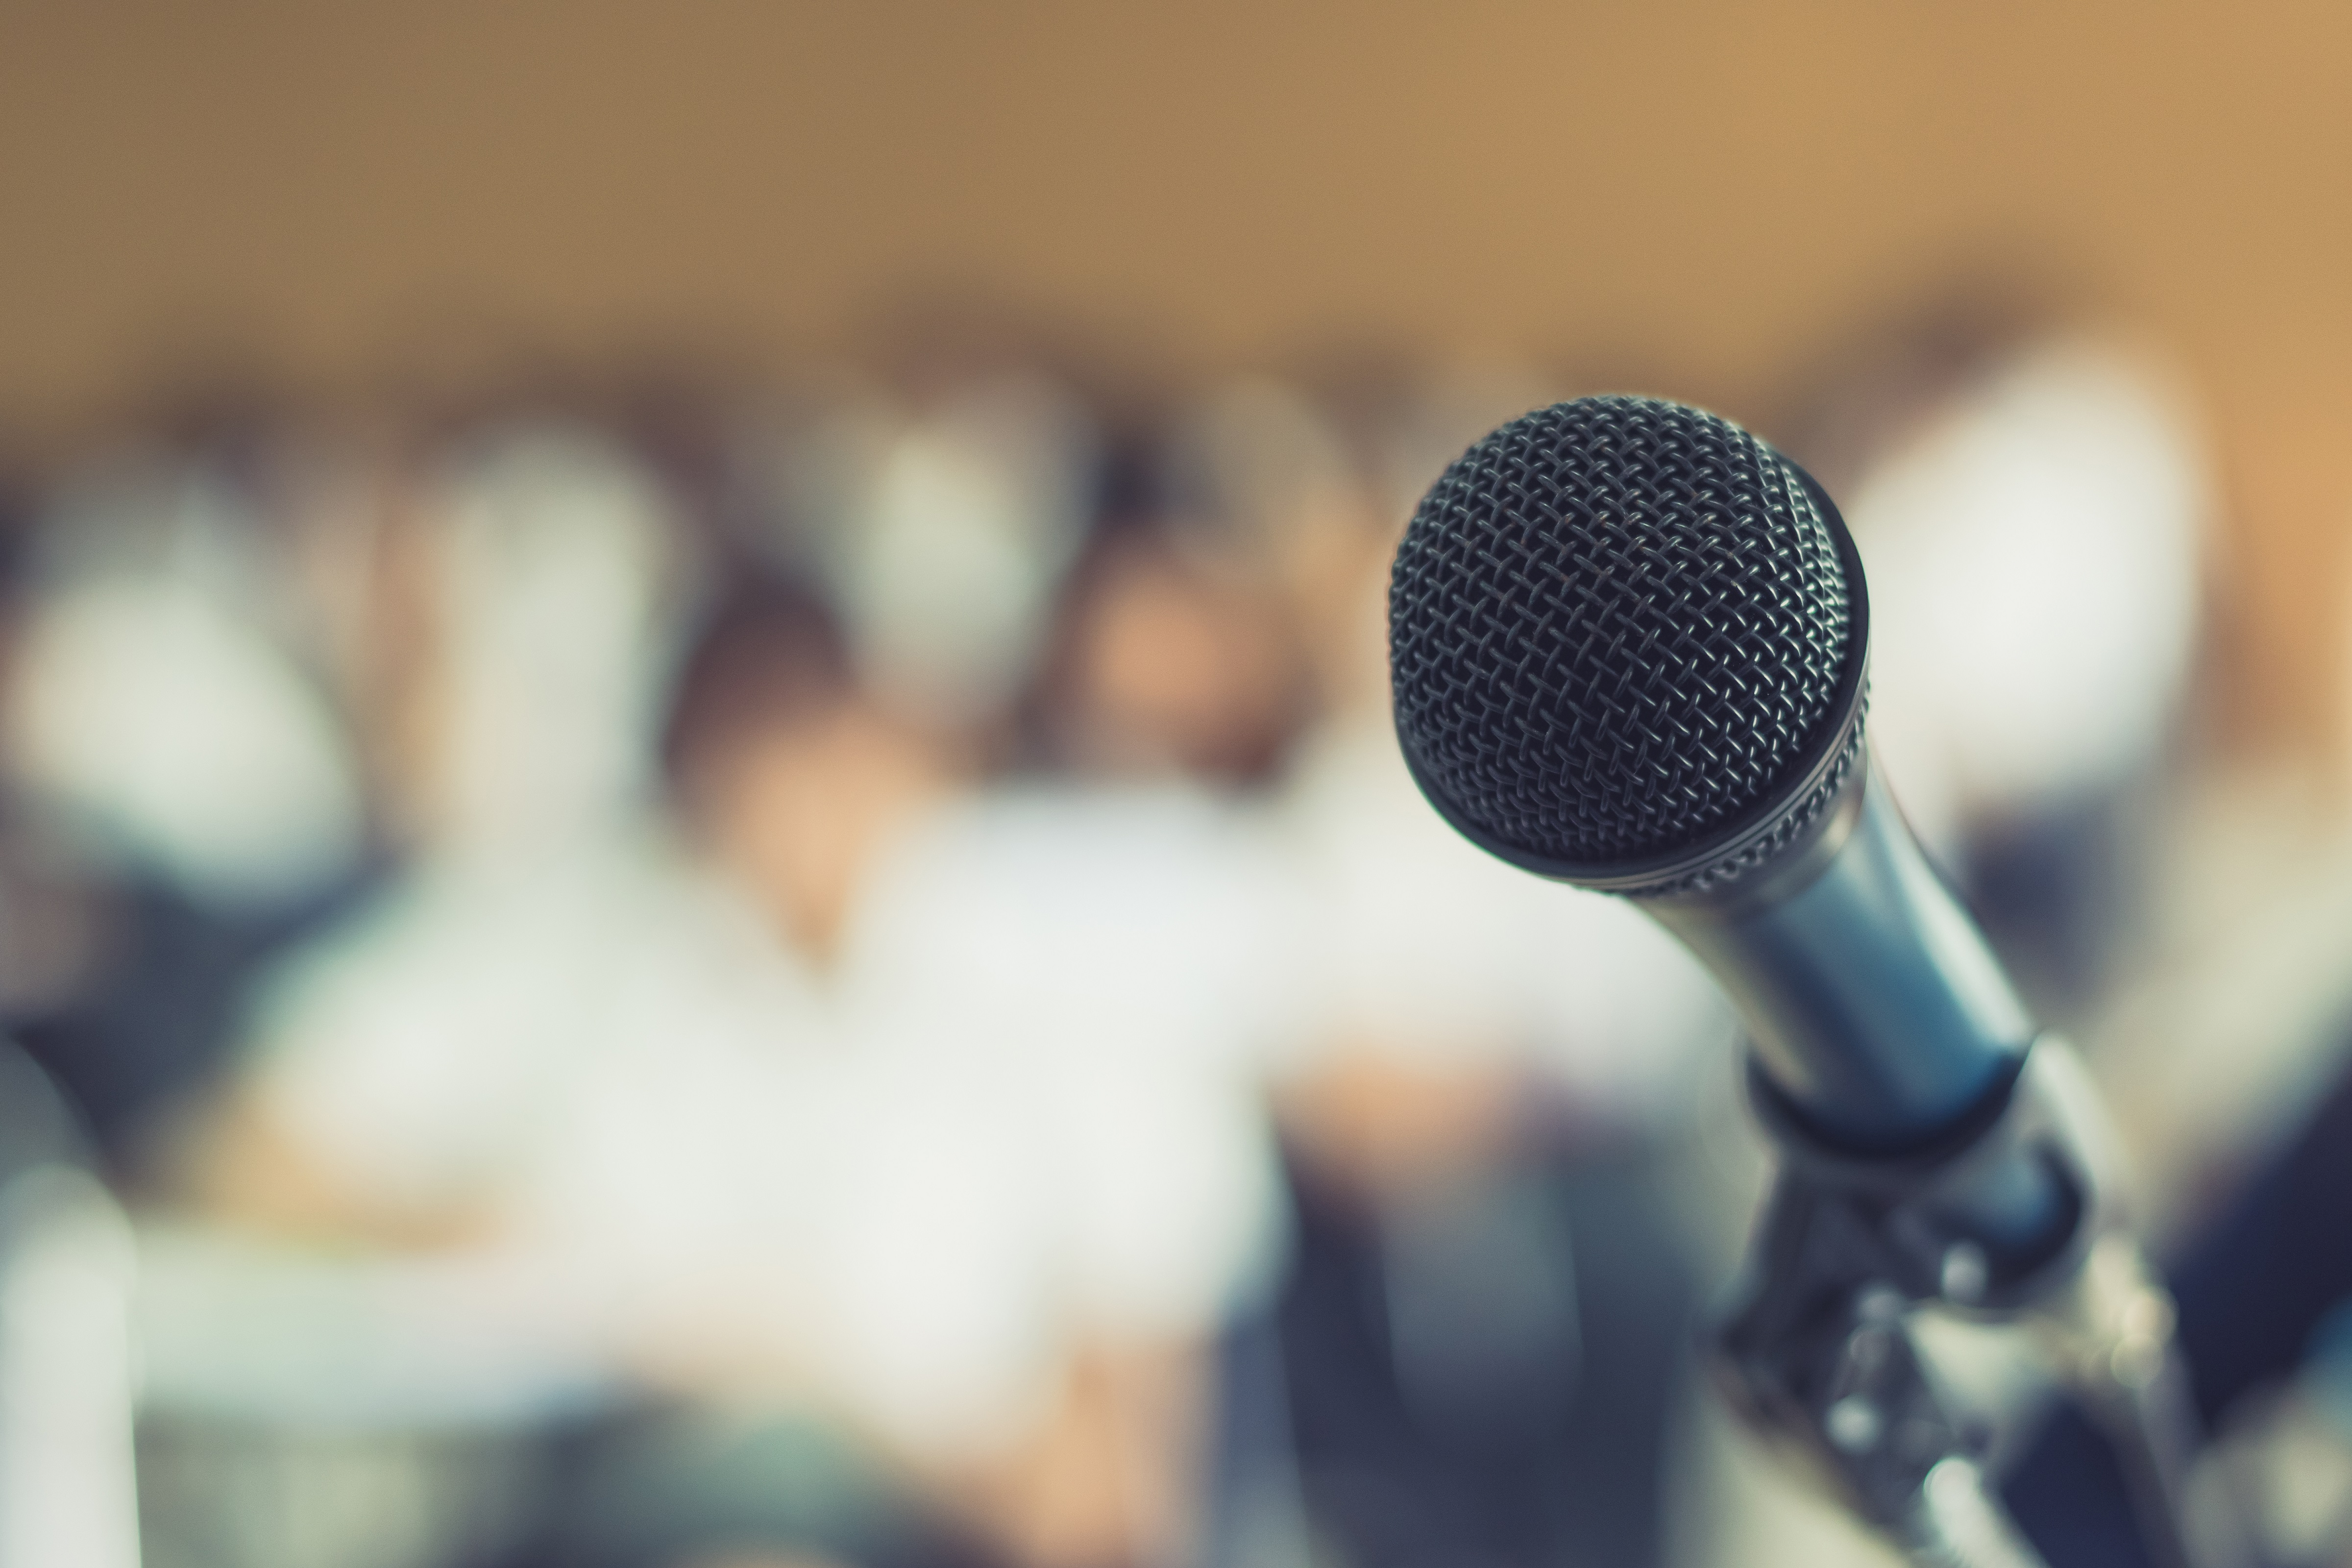 Tom Harris of Live Innovations adds to speaking engagements with EventLab workshop